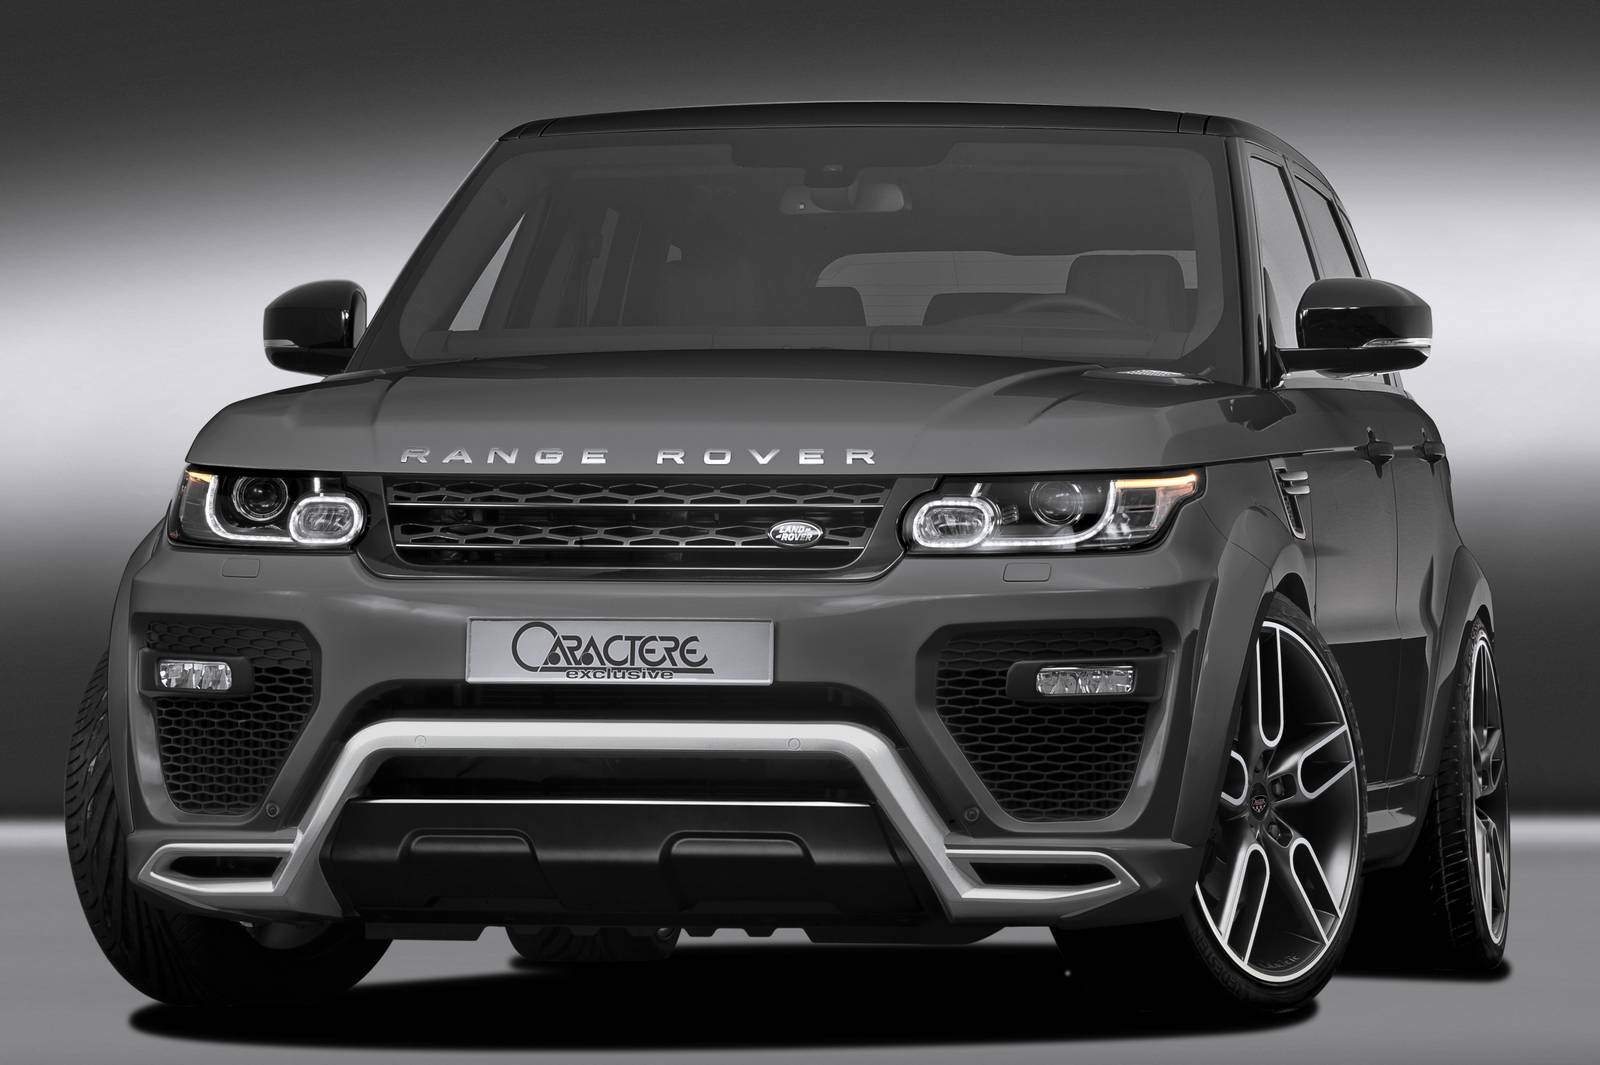 official caractere exclusive range rover gtspirit. Black Bedroom Furniture Sets. Home Design Ideas